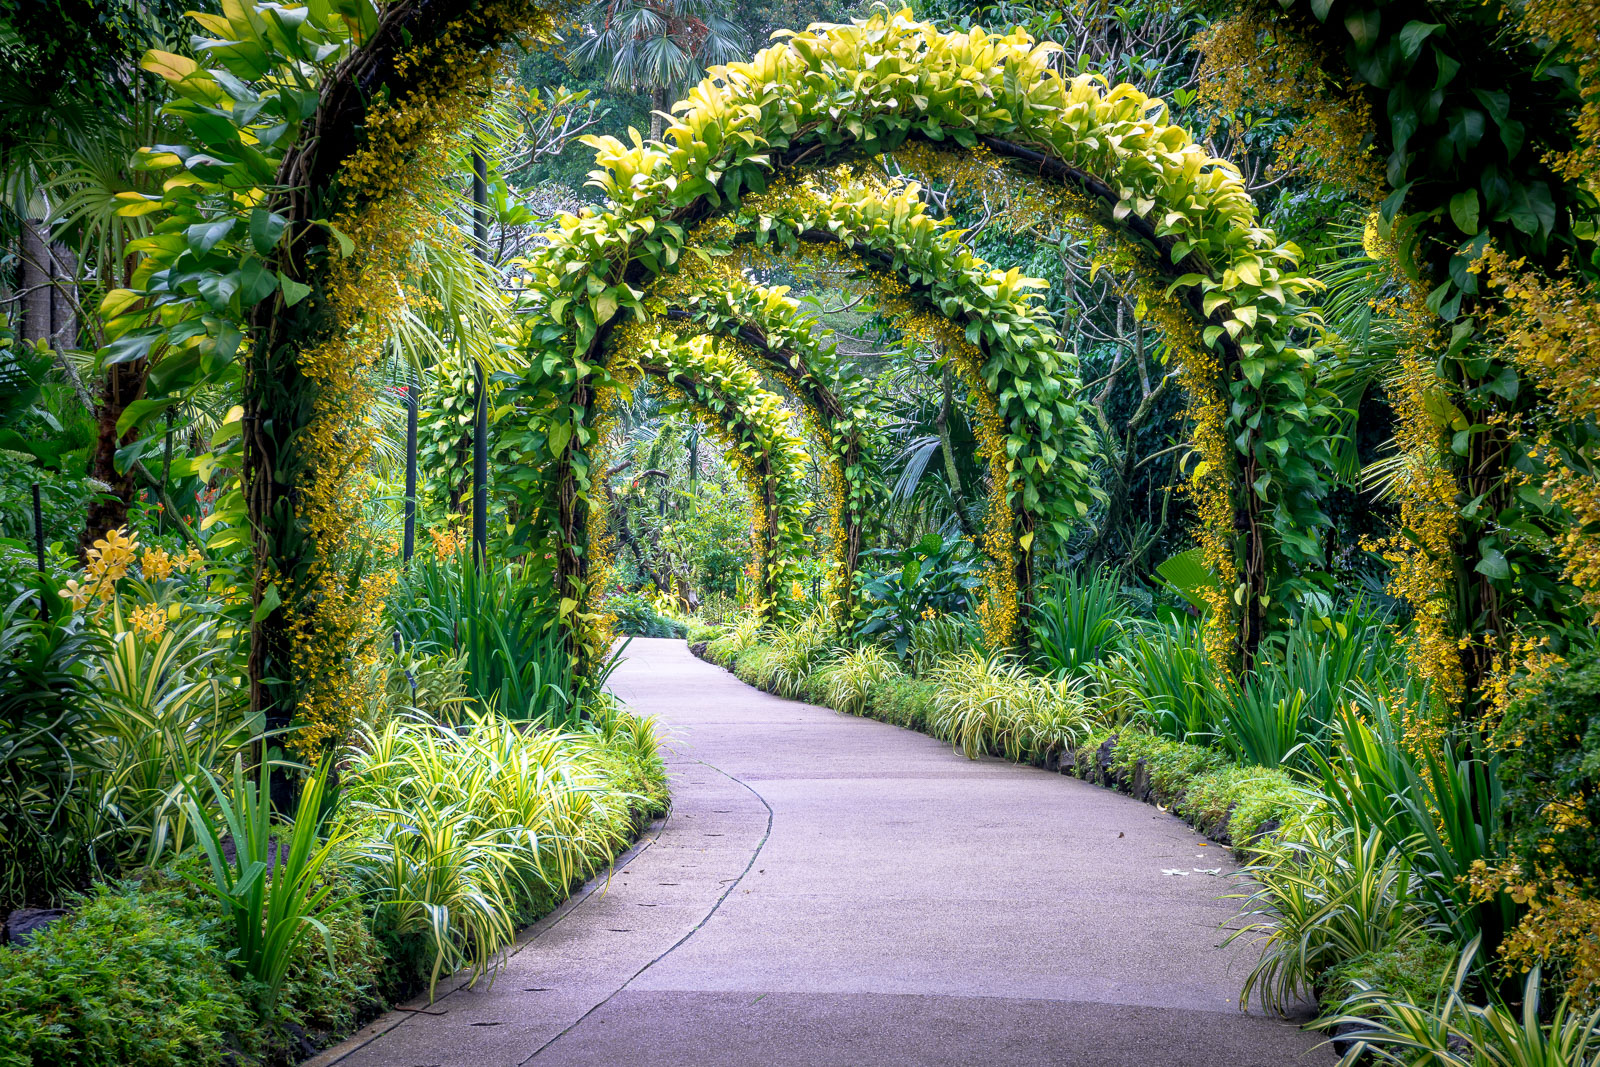 POW: Golden Arches in Singapore's Botanical Gardens